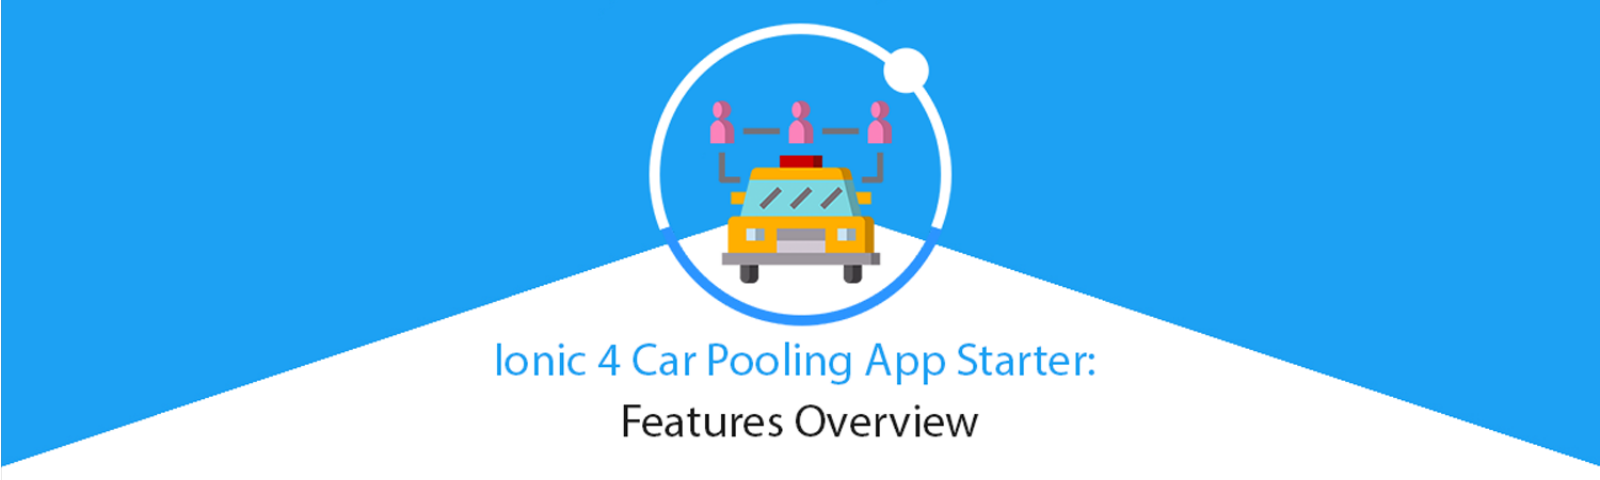 Ionic 4 Car Pooling App Starter—Features Overview